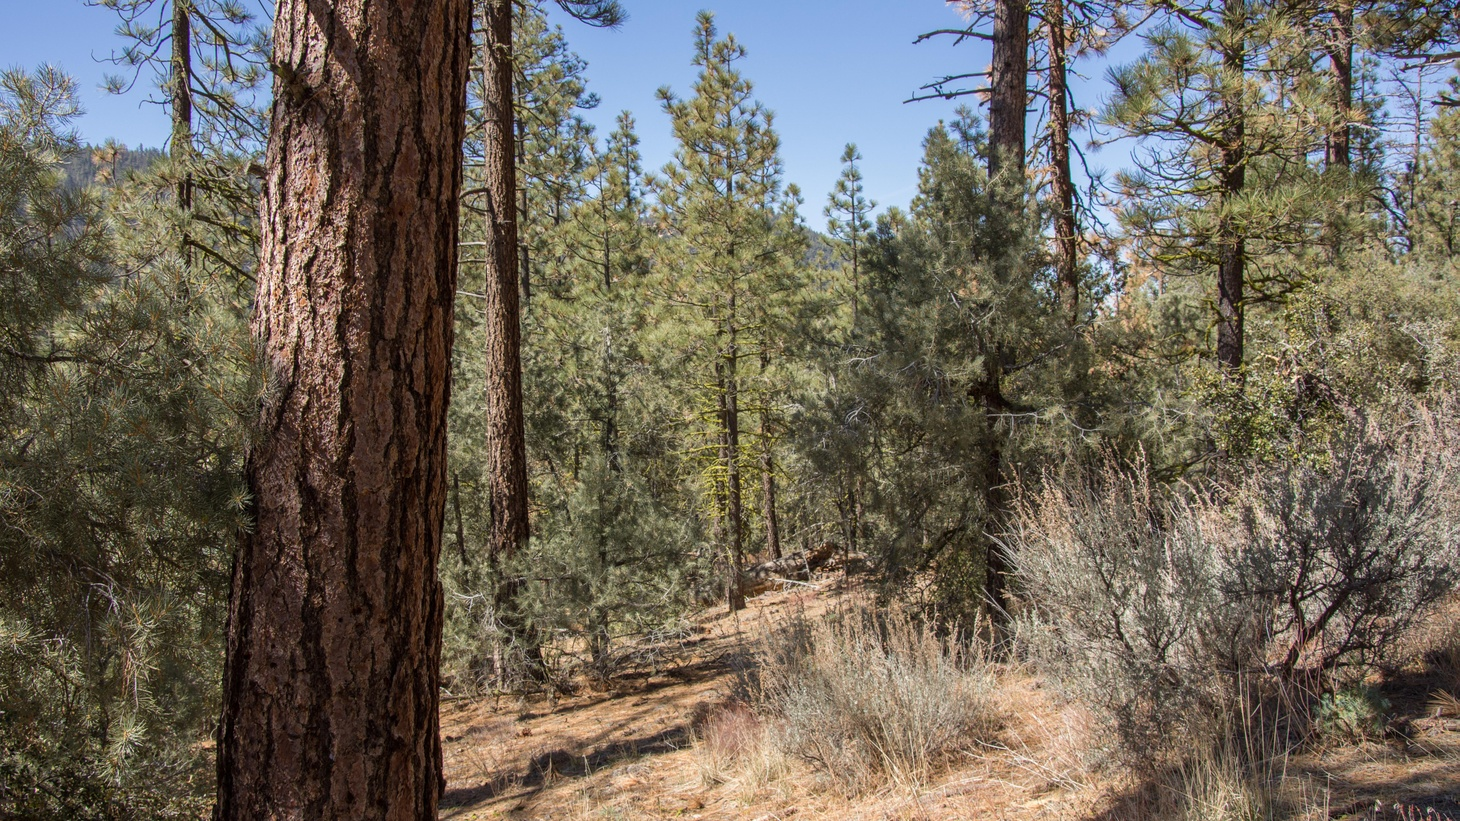 Officials with the Los Padres National Forest want to create fire breaks to protect communities from wildfires, but environmentalists worry about the harmful effects of commercial logging. Writer T.C.